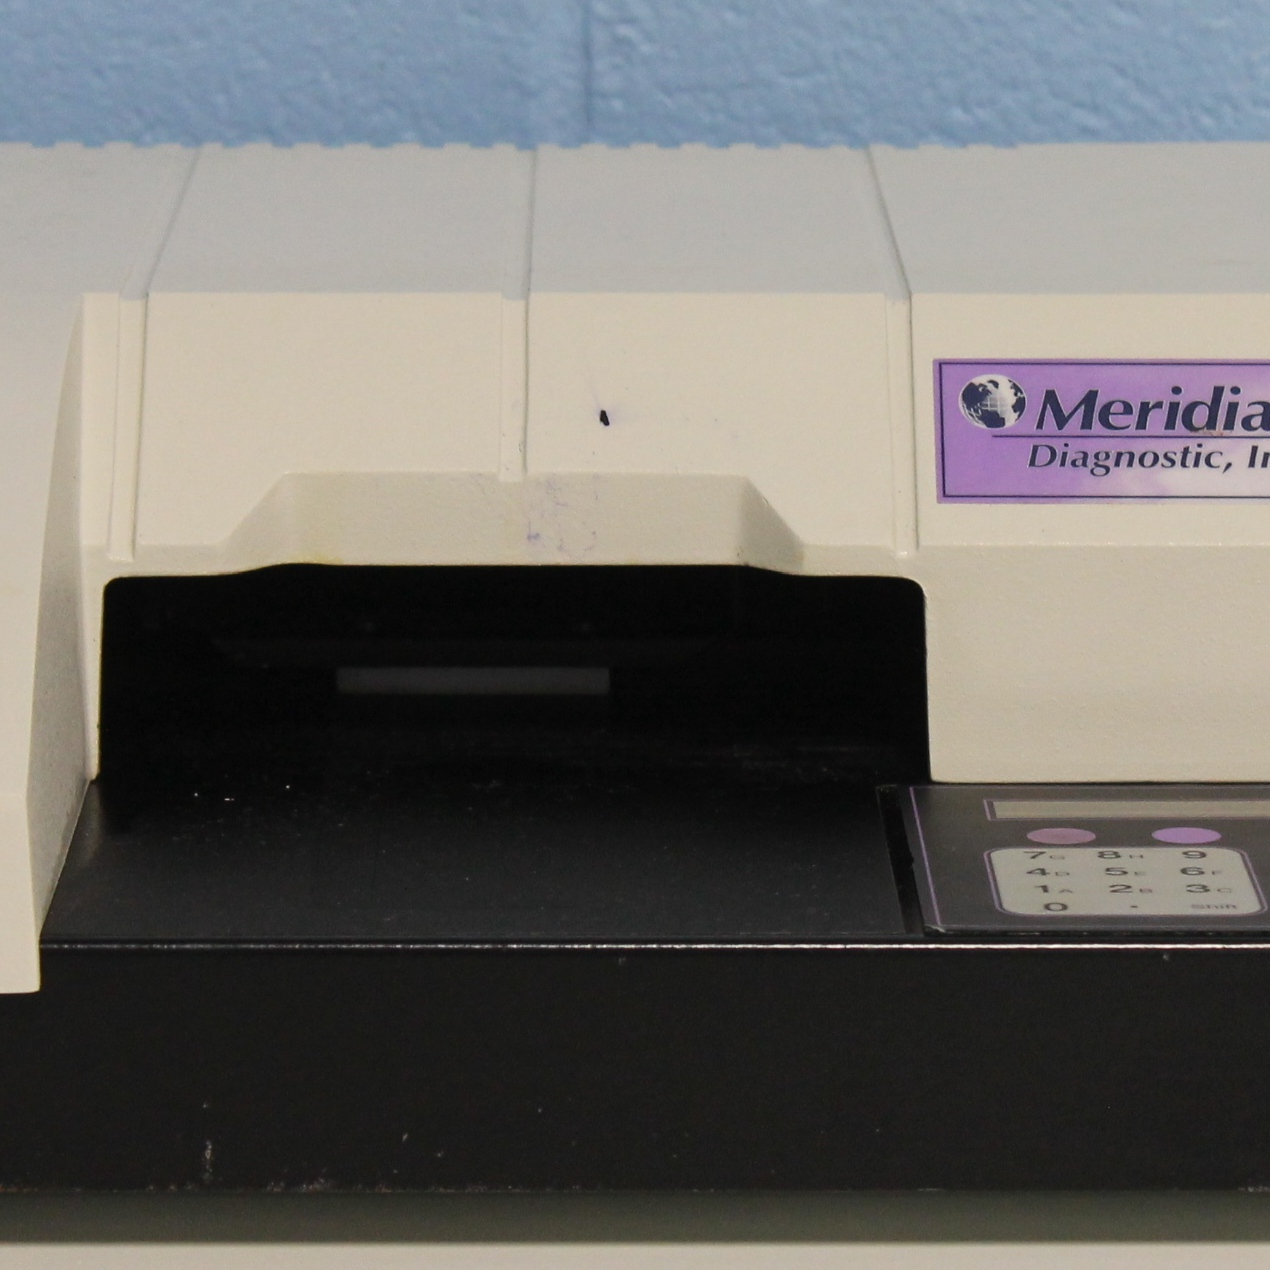 Meridian Diagnostic ELx800 Universal Microplate Reader Image